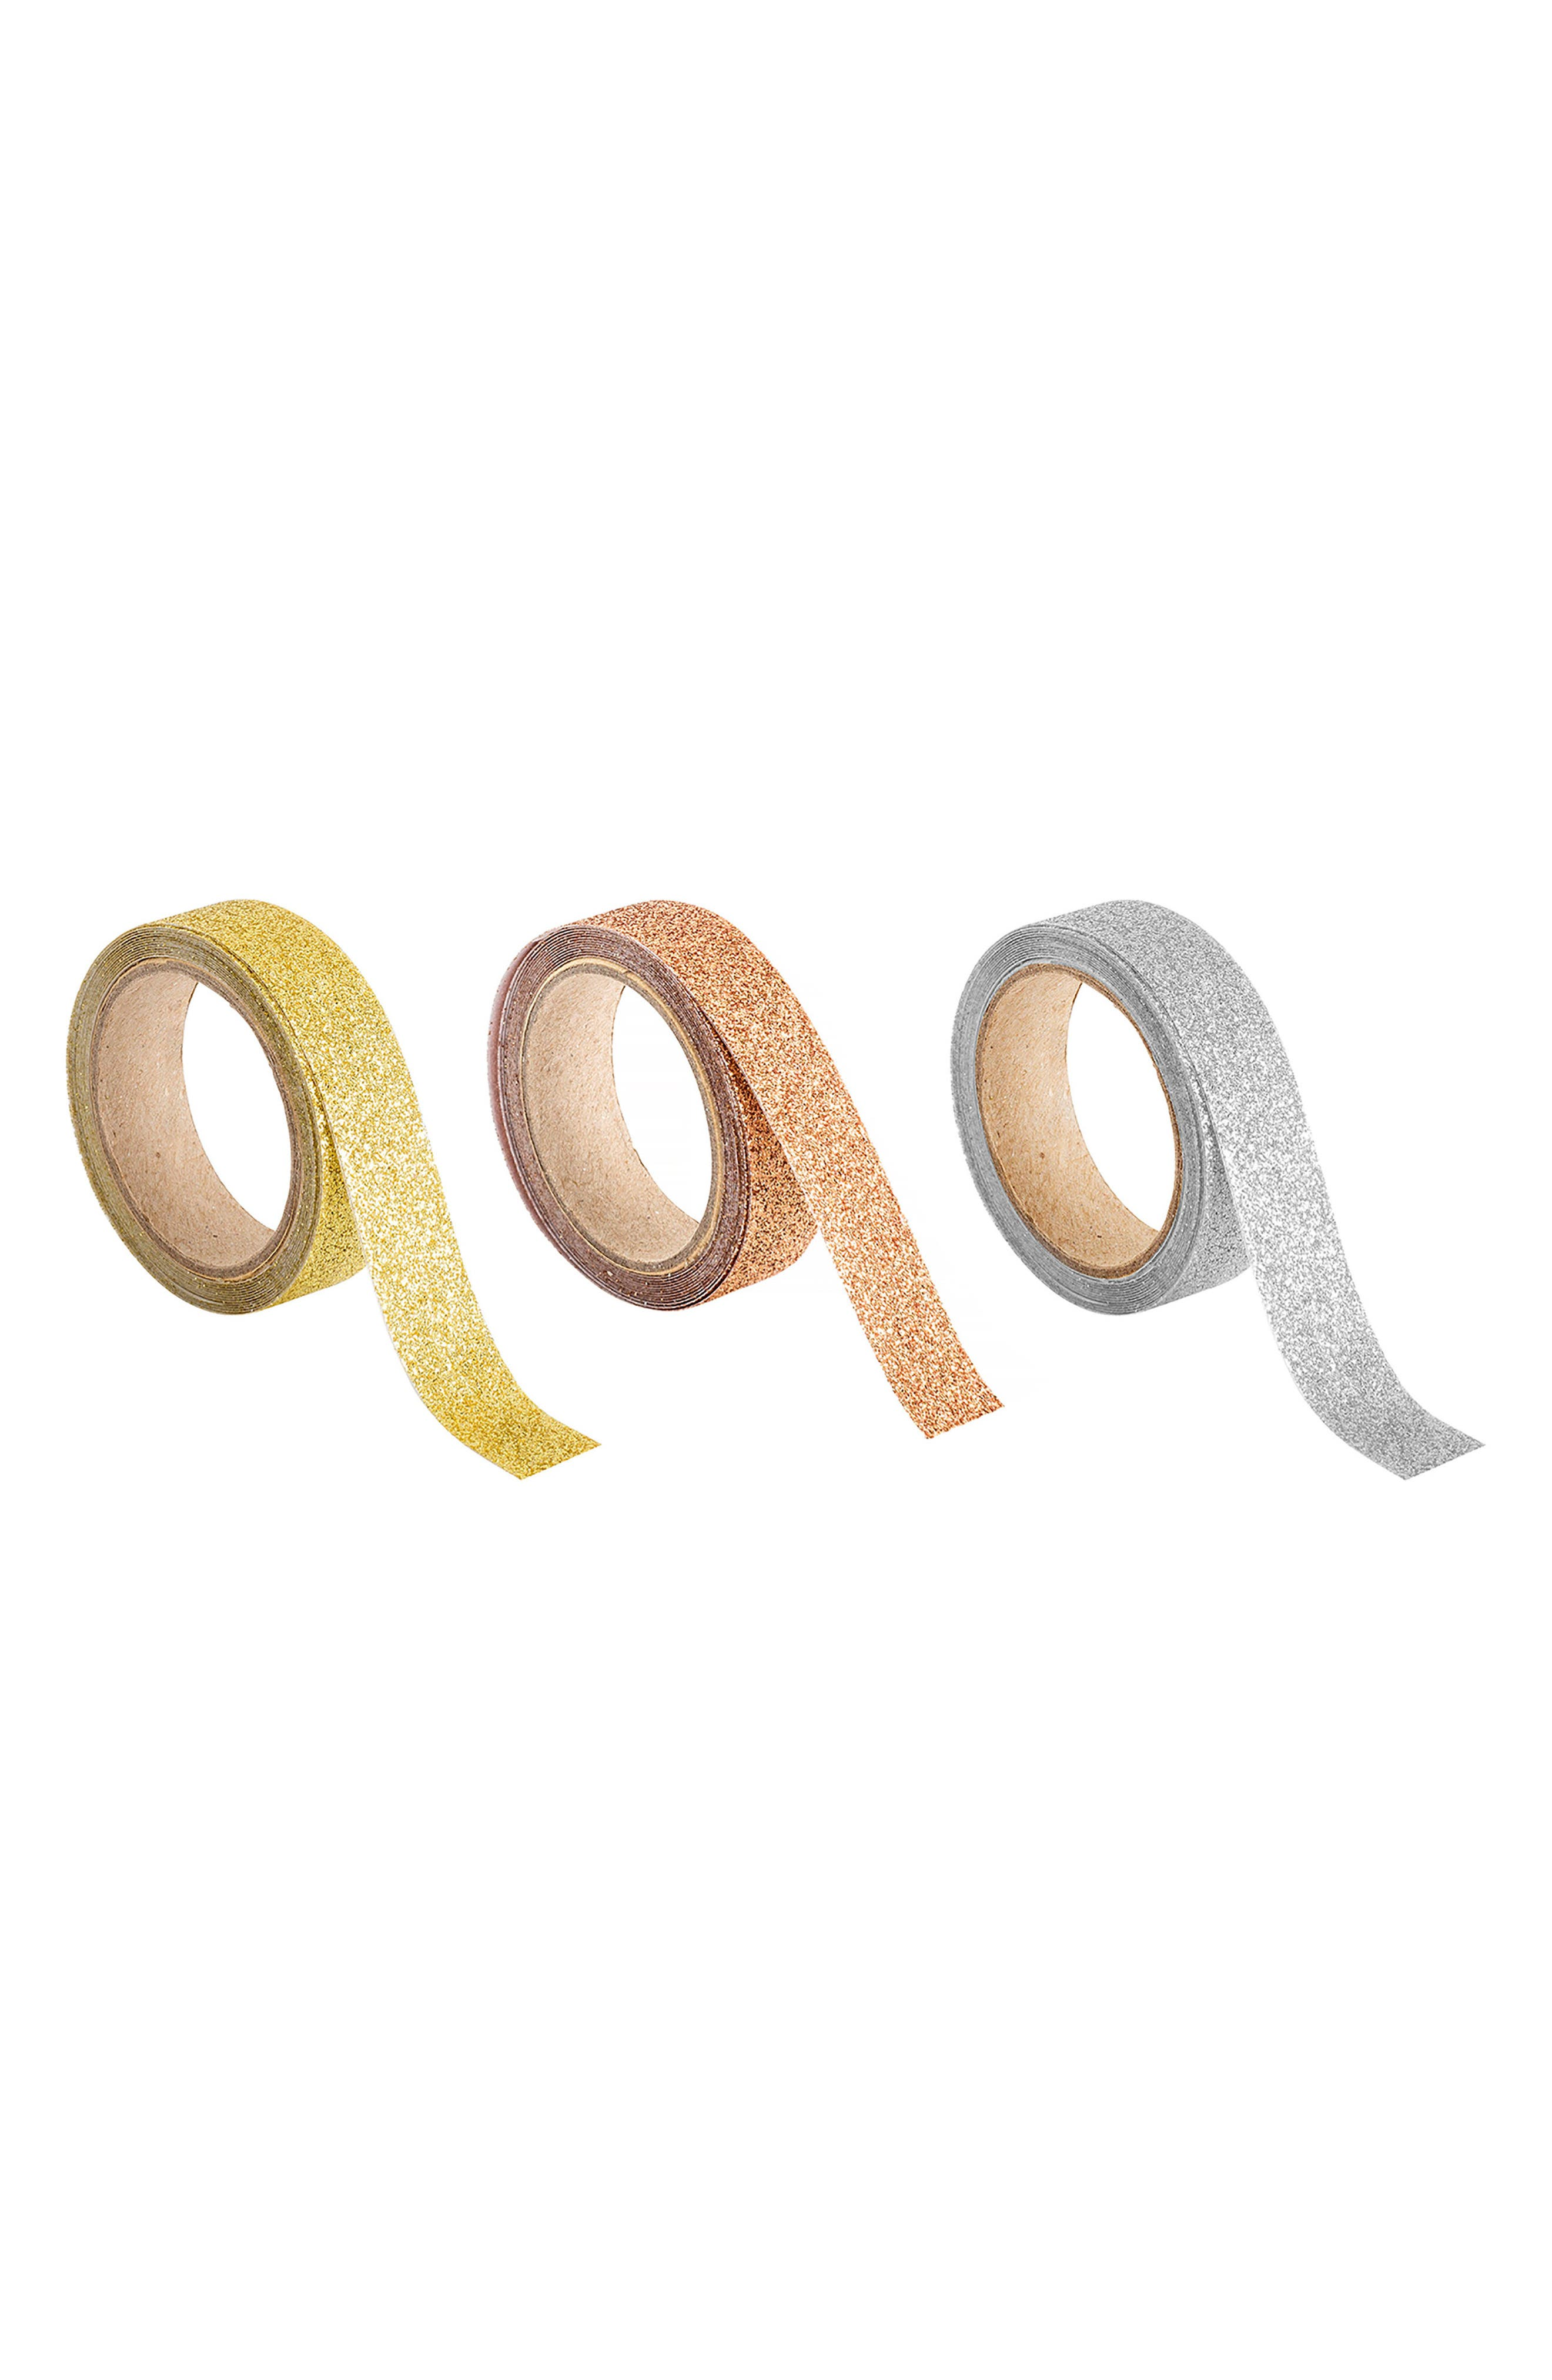 3-Pack Glitter Tape Set,                         Main,                         color, Multi